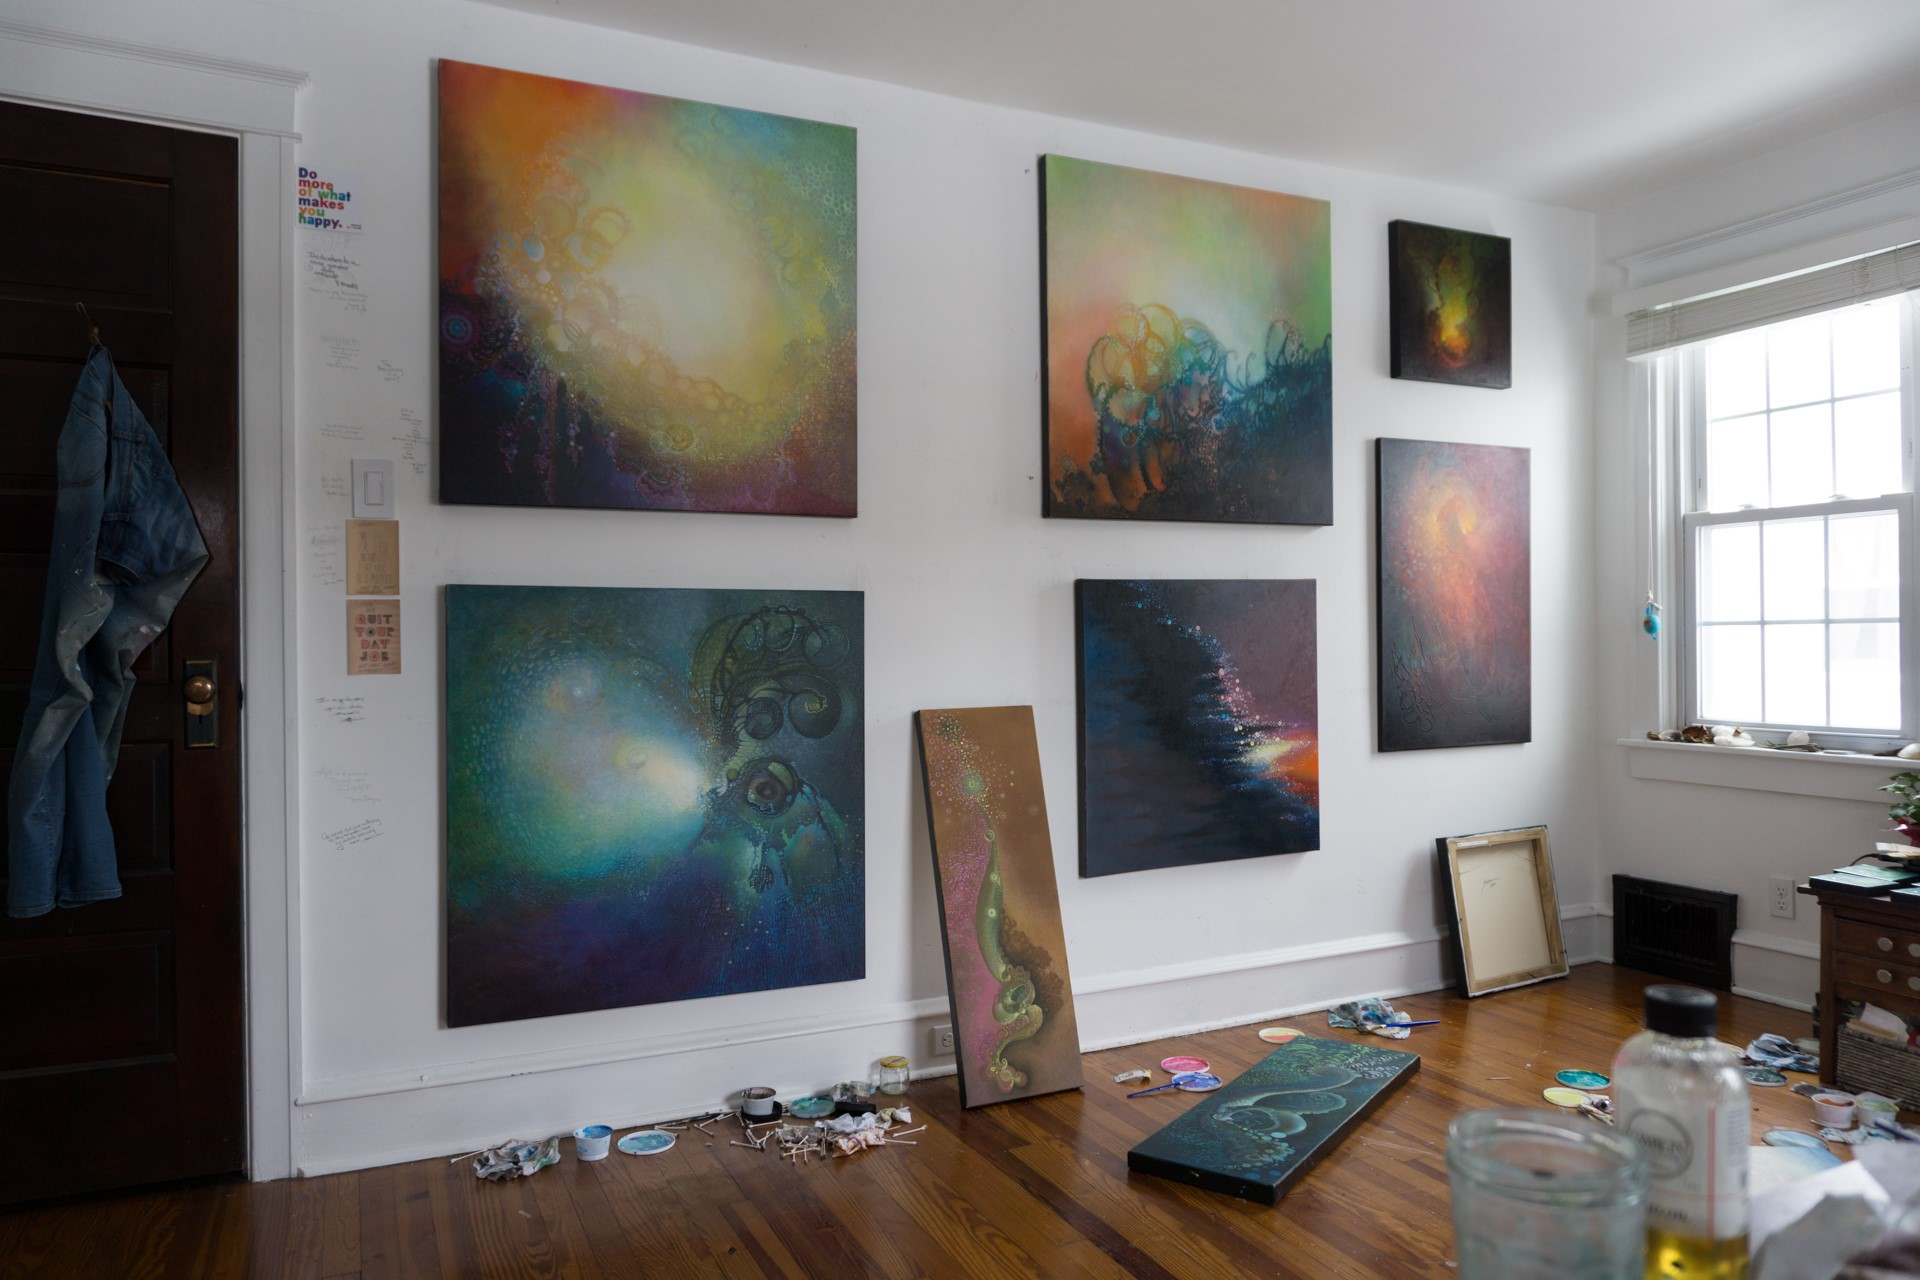 Eighth Annual Chester County Studio Tour to Feature 154 Artists in 64 Studios